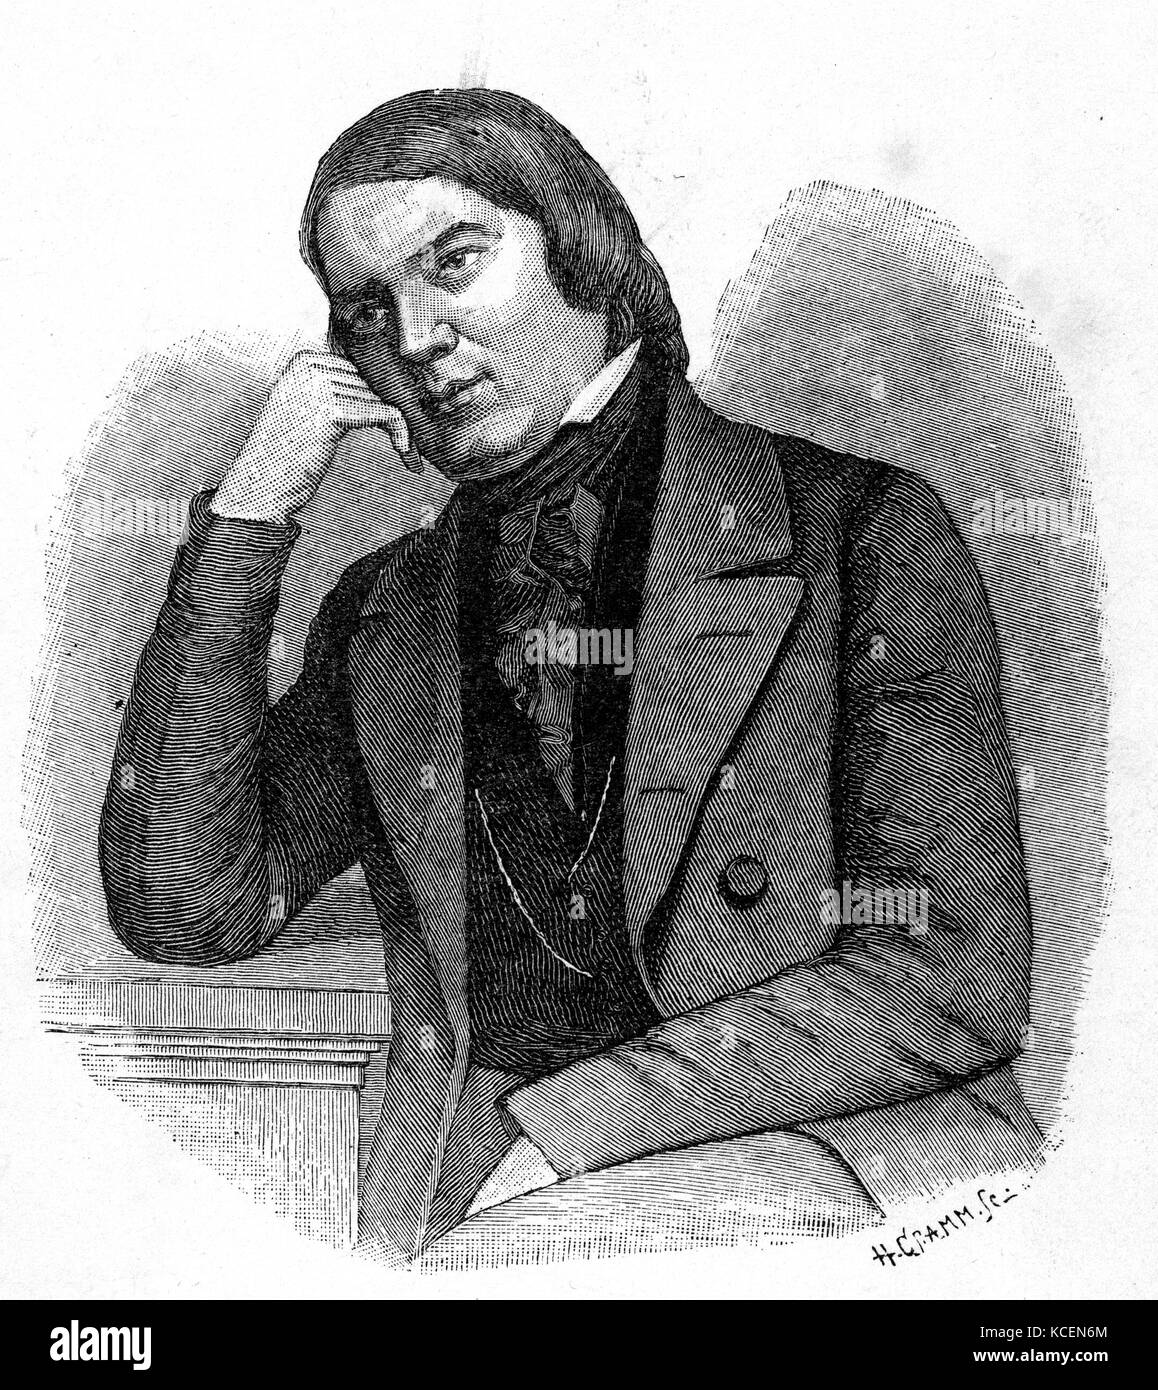 Robert Schumann (1810 – 1856) German composer and influential music critic. He is widely regarded as one of the - Stock Image